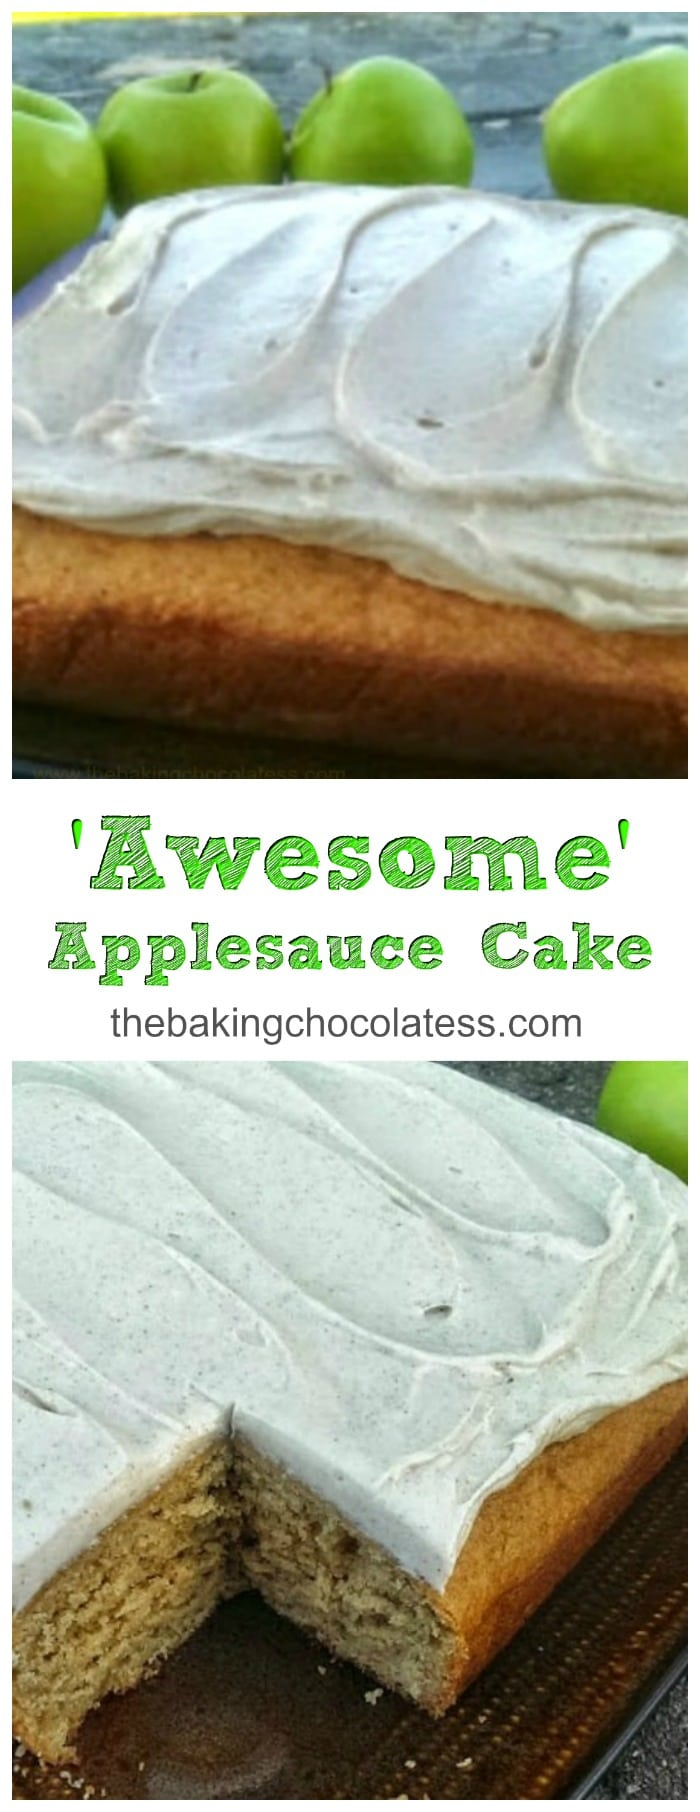 'Awesome' Applesauce Cake {Cinnamon Cream Cheese Frosting included!}